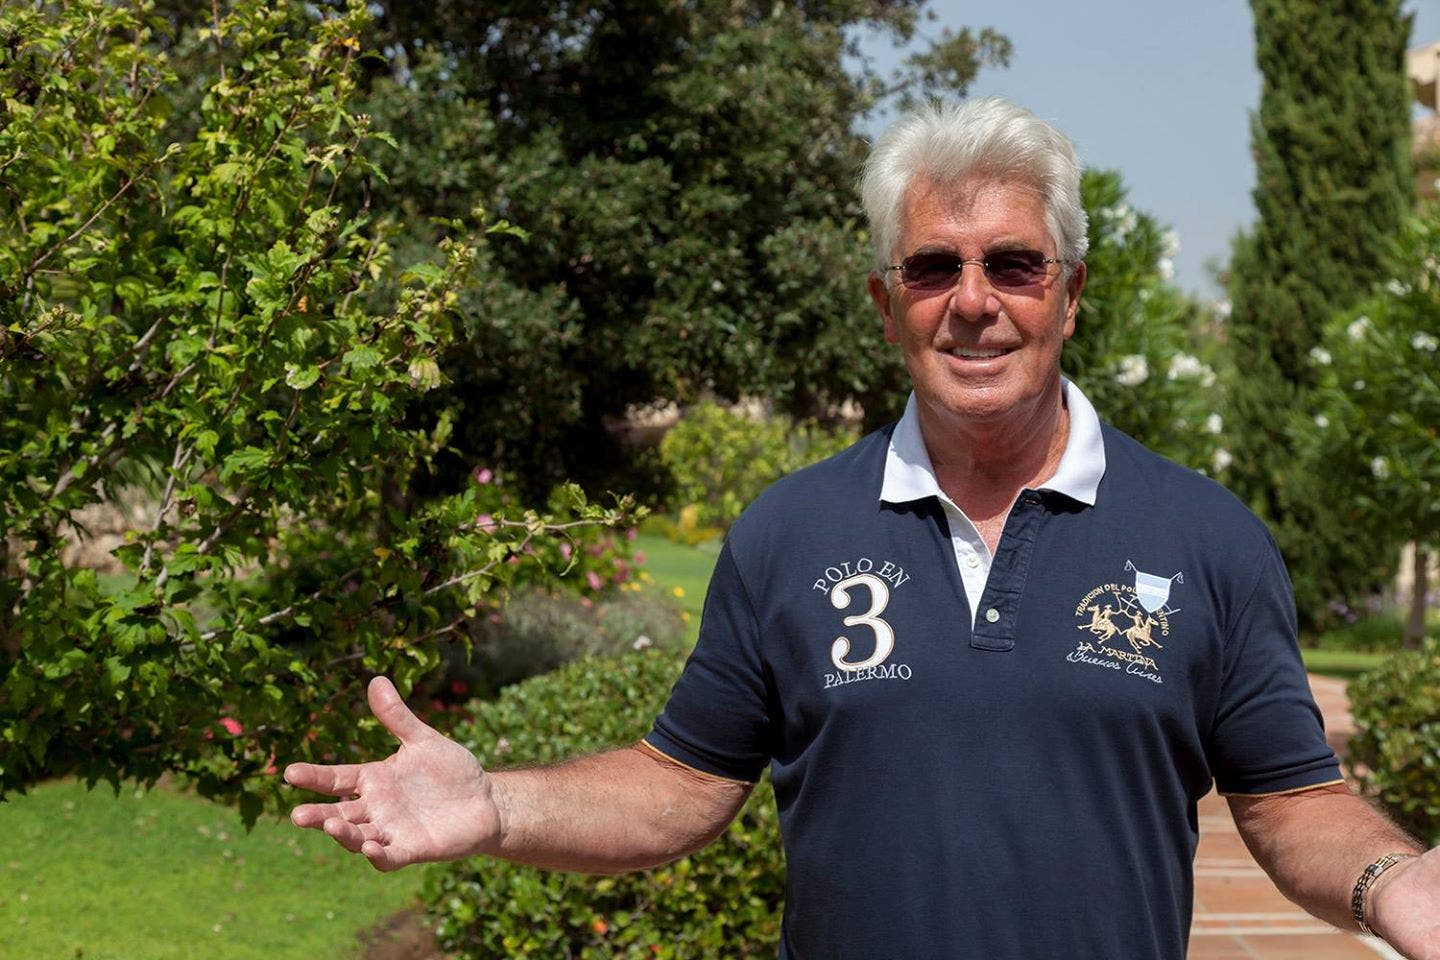 Max Clifford found guilty of eight charges of indecent assault